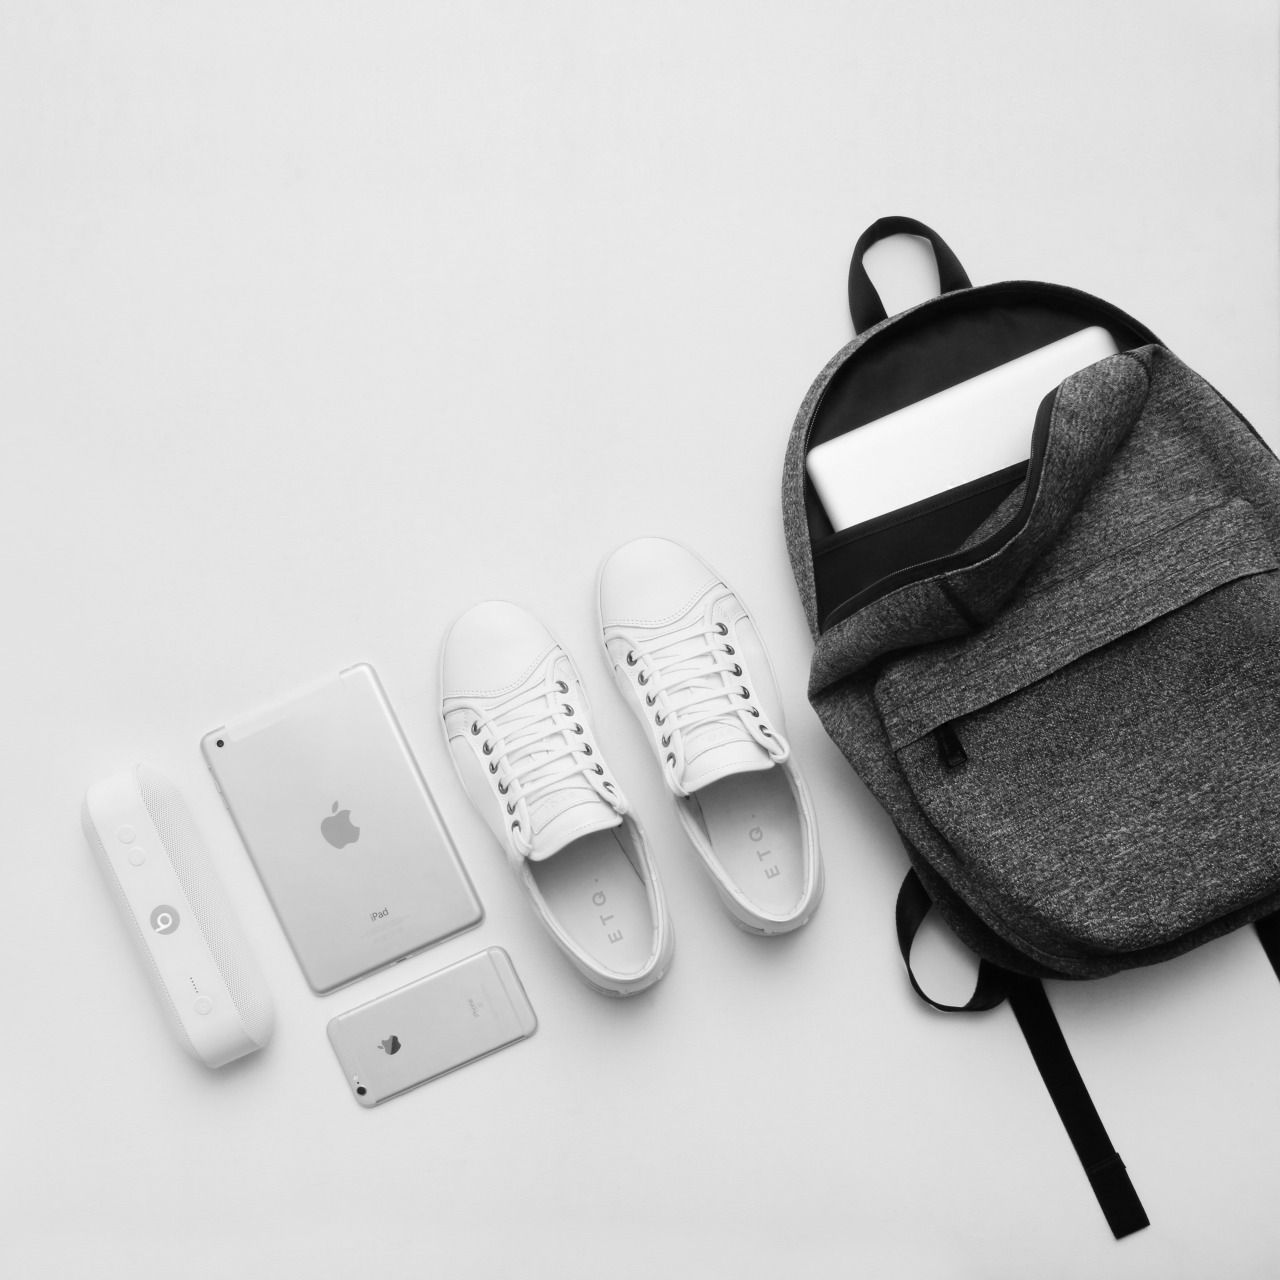 e01a7ba1dfea Apex Knit from Herschel Supply.Photographed by David Grr.